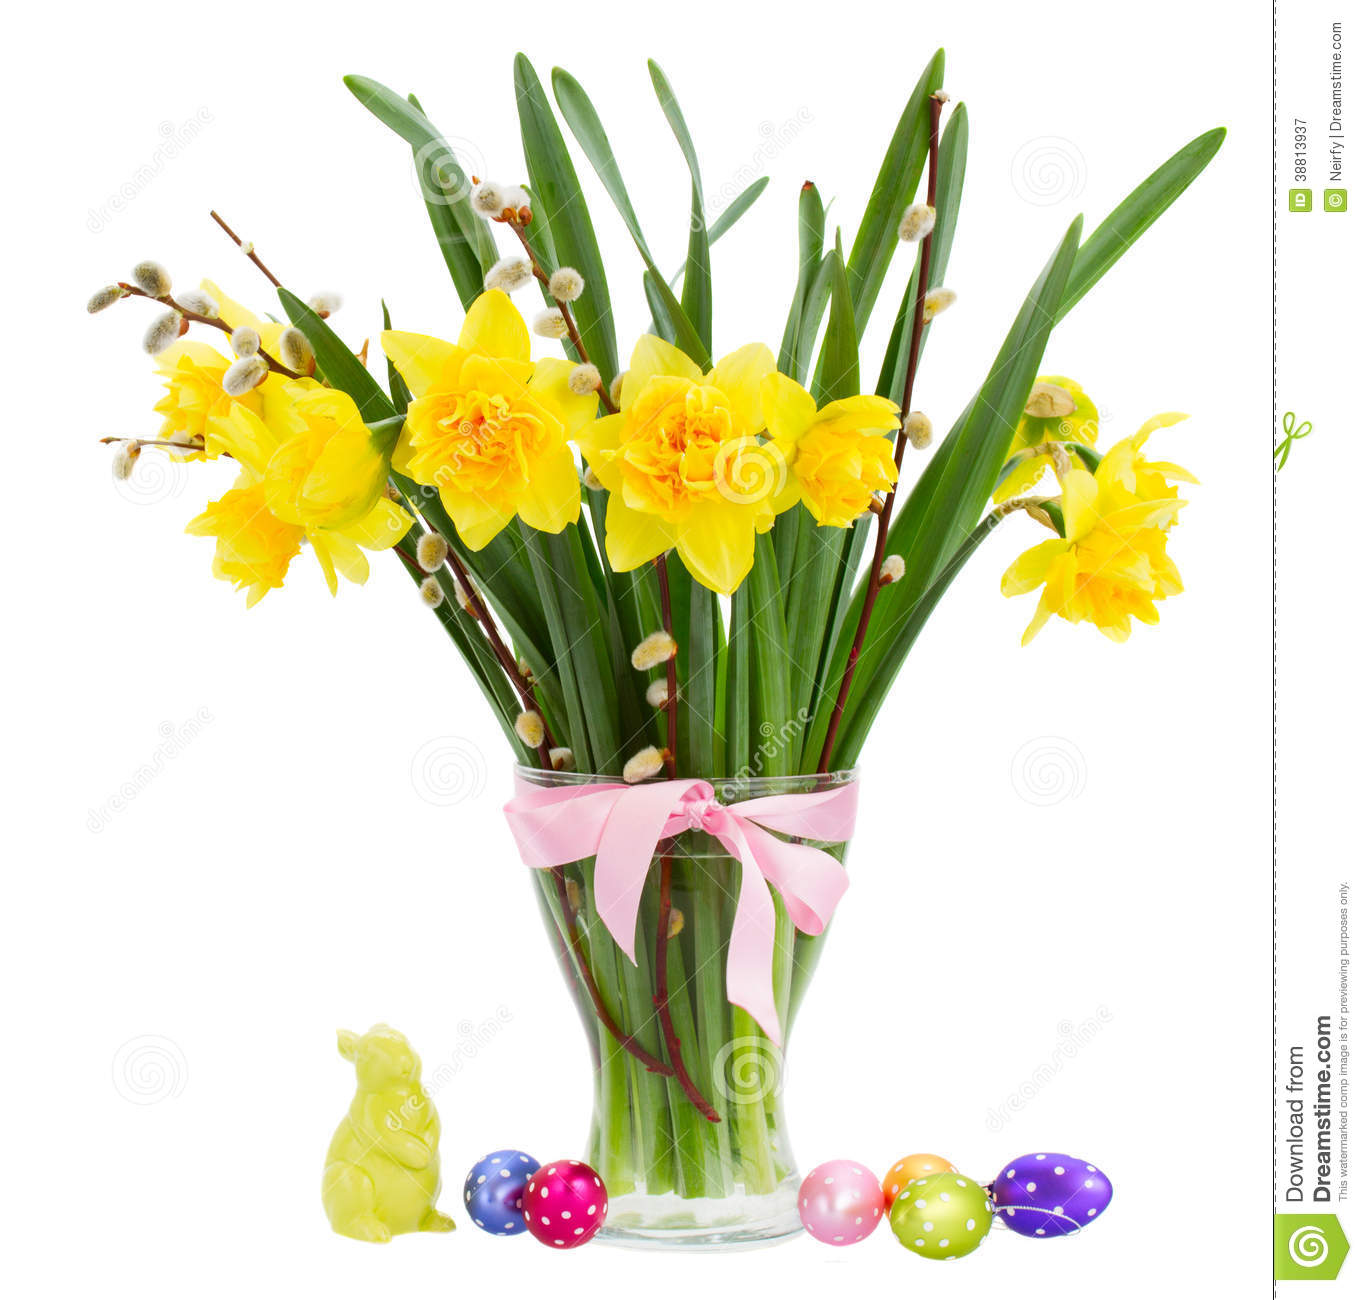 Bouquet Of Daffodils Flowers With Easter Eggs Stock Photo ...